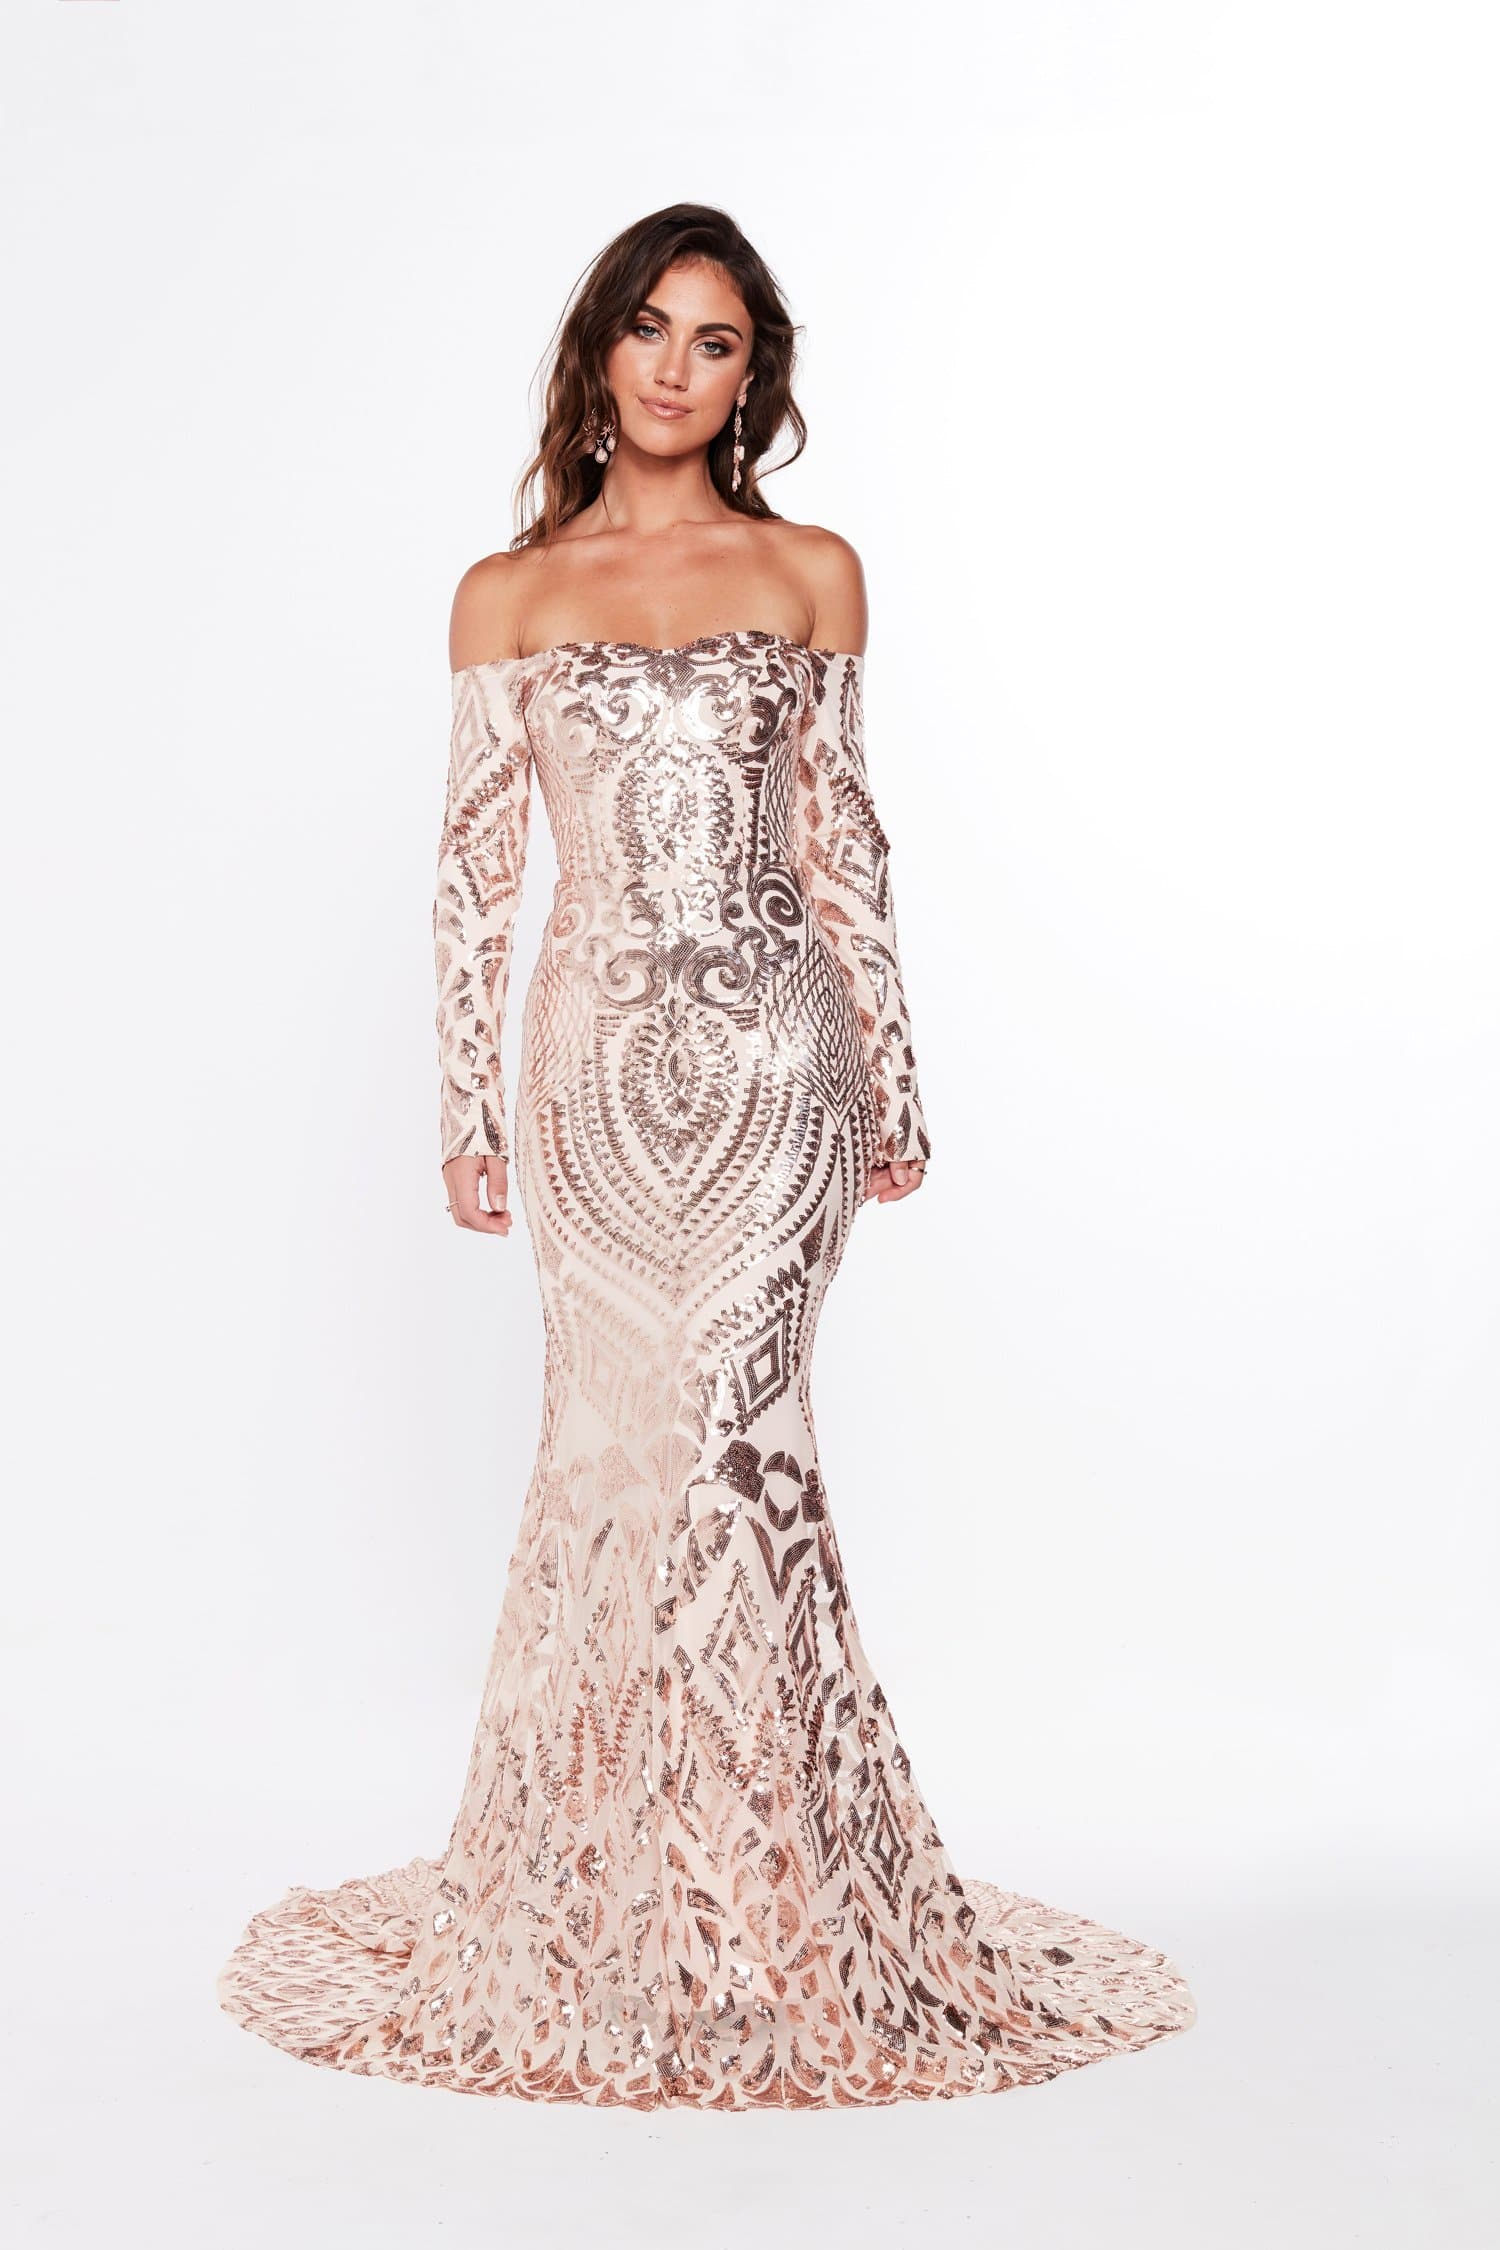 A&N Isidora - Rose Gold Sequin Gown with Long Sleeves & Mermaid Train